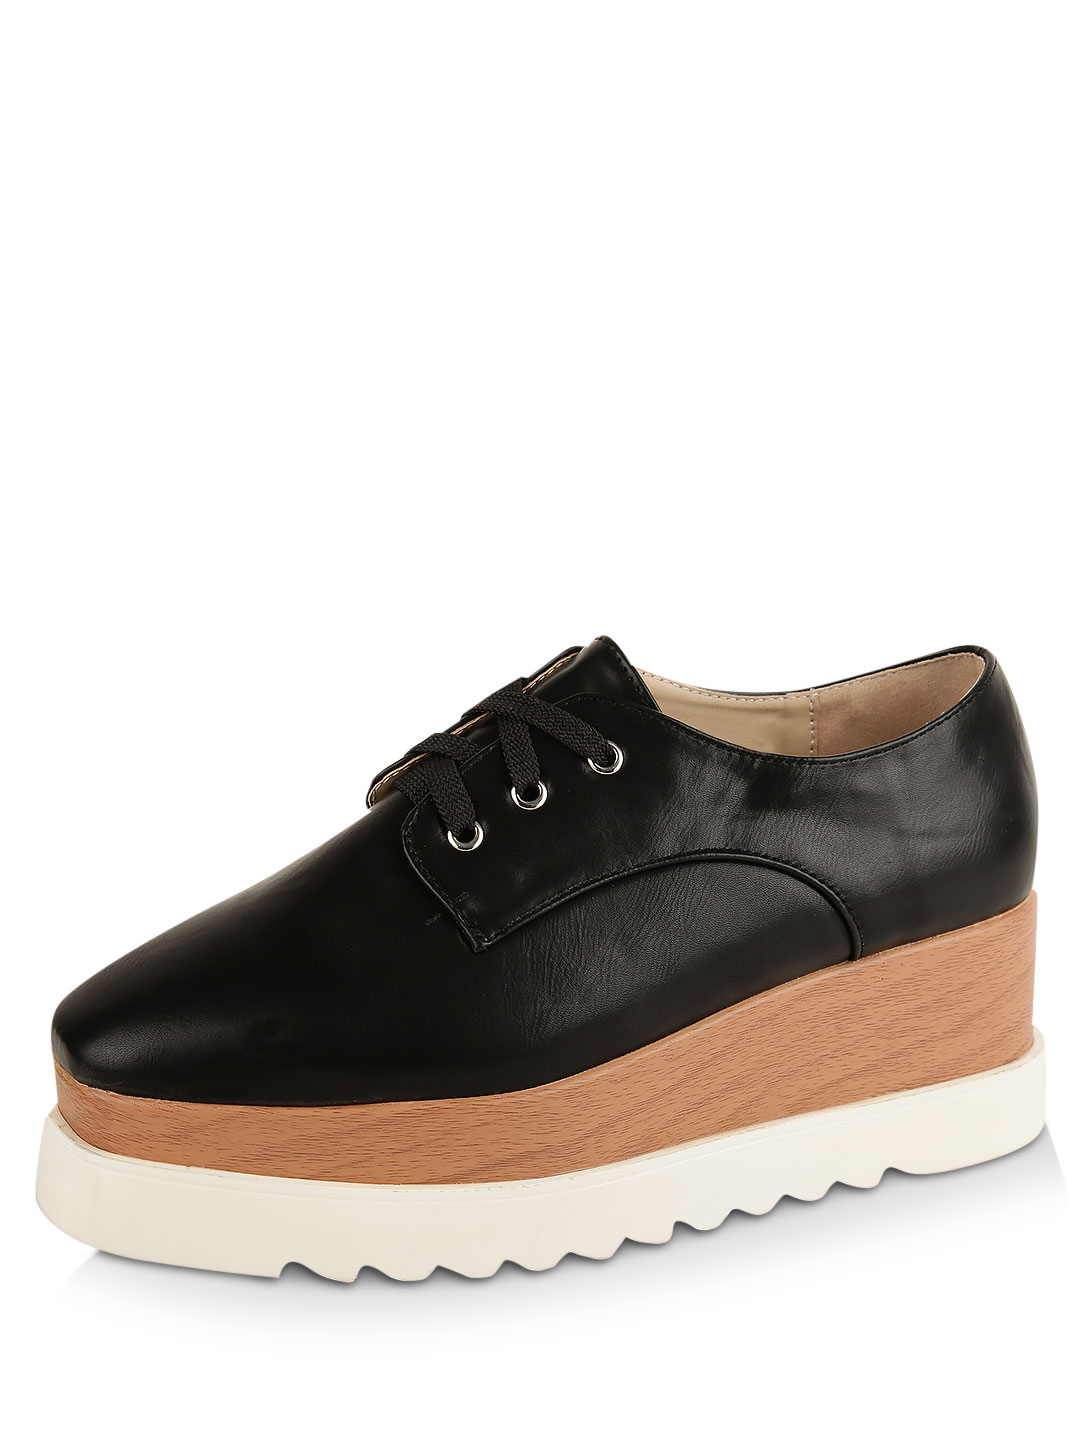 My Foot Couture Black Lace Up Shoes With Stacked Sole 1